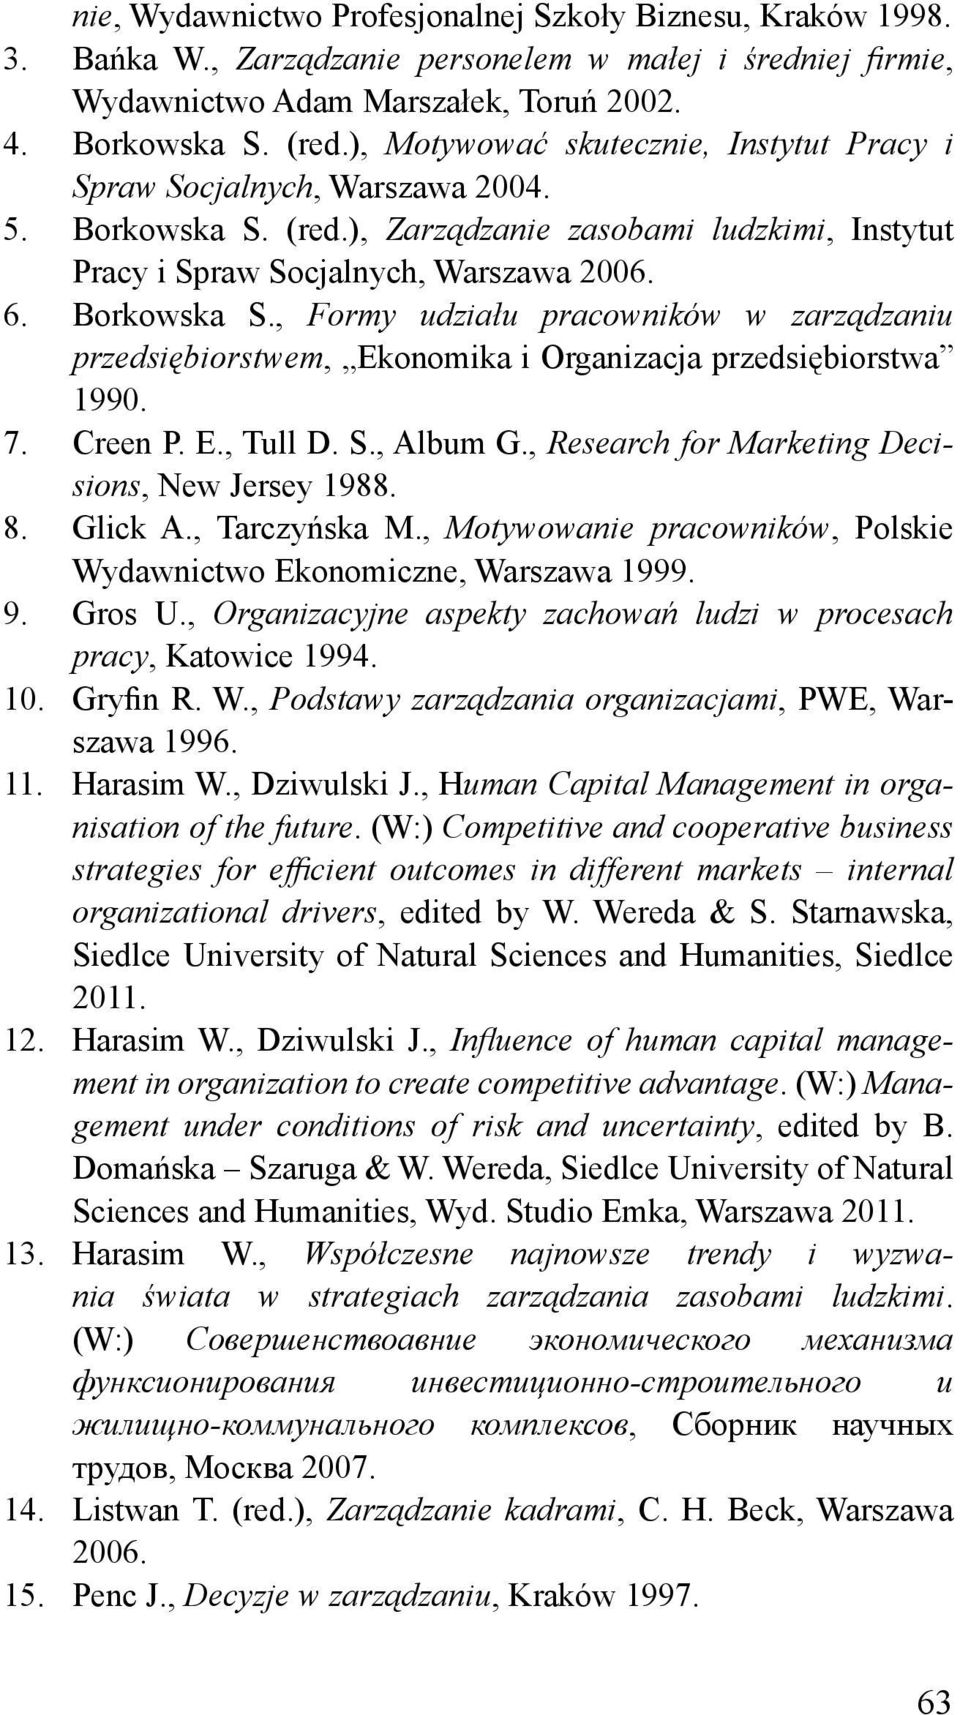 7. Creen P. E., Tull D. S., Album G., Research for Marketing Decisions, New Jersey 1988. 8. Glick A., Tarczyńska M., Motywowanie pracowników, Polskie Wydawnictwo Ekonomiczne, Warszawa 1999. 9. Gros U.